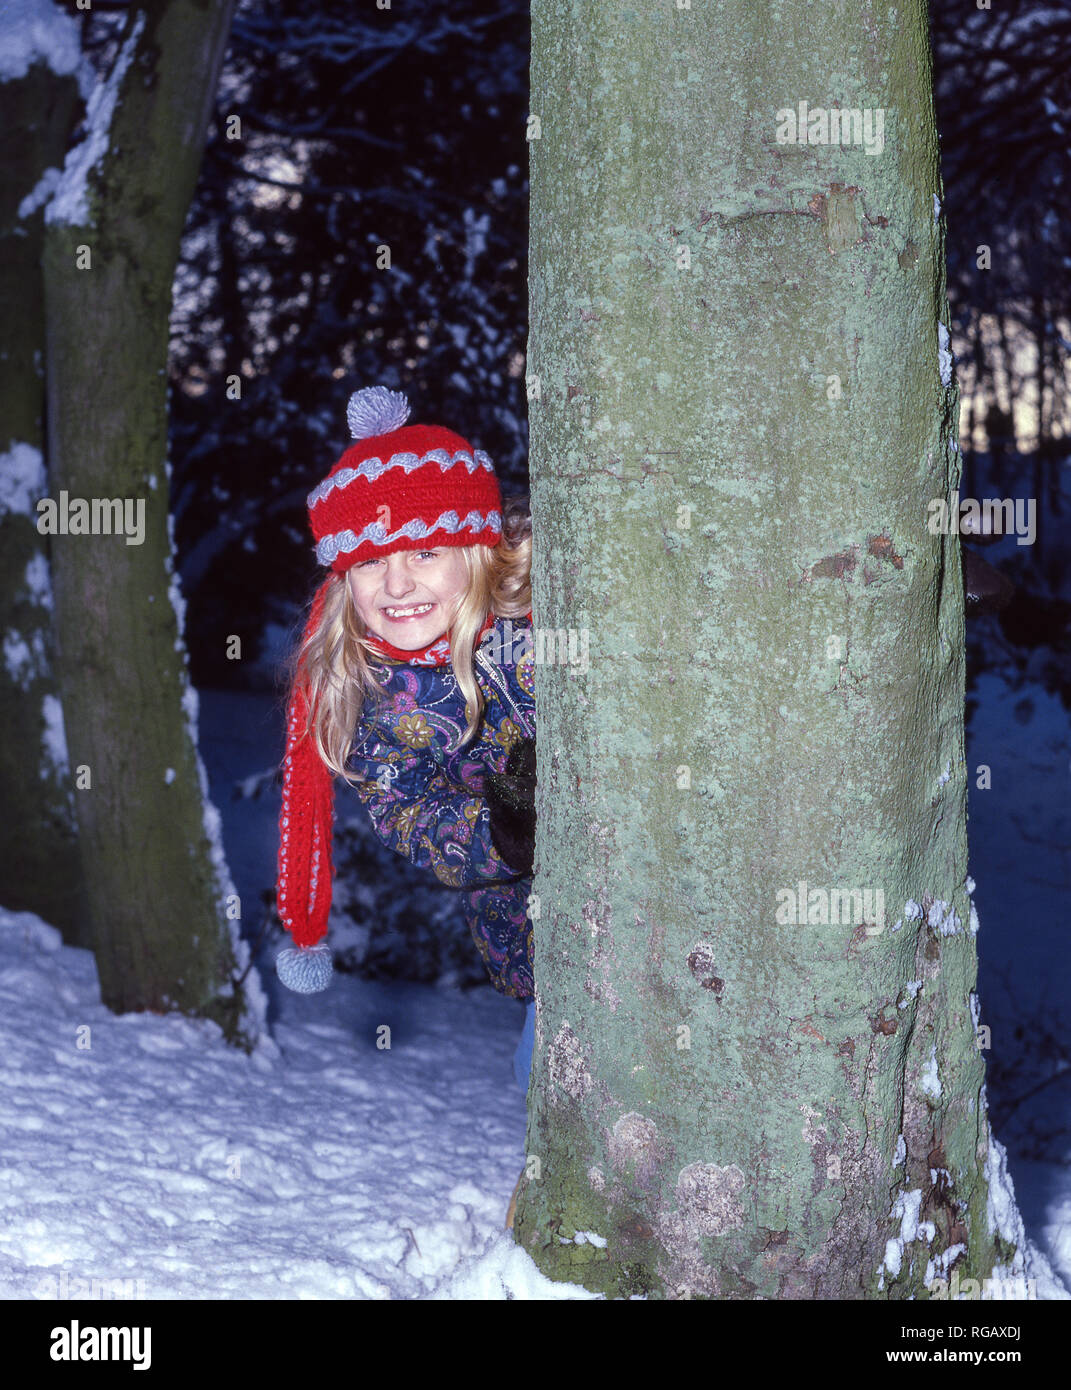 Young girl playing hide and seek in the snow. - Stock Image